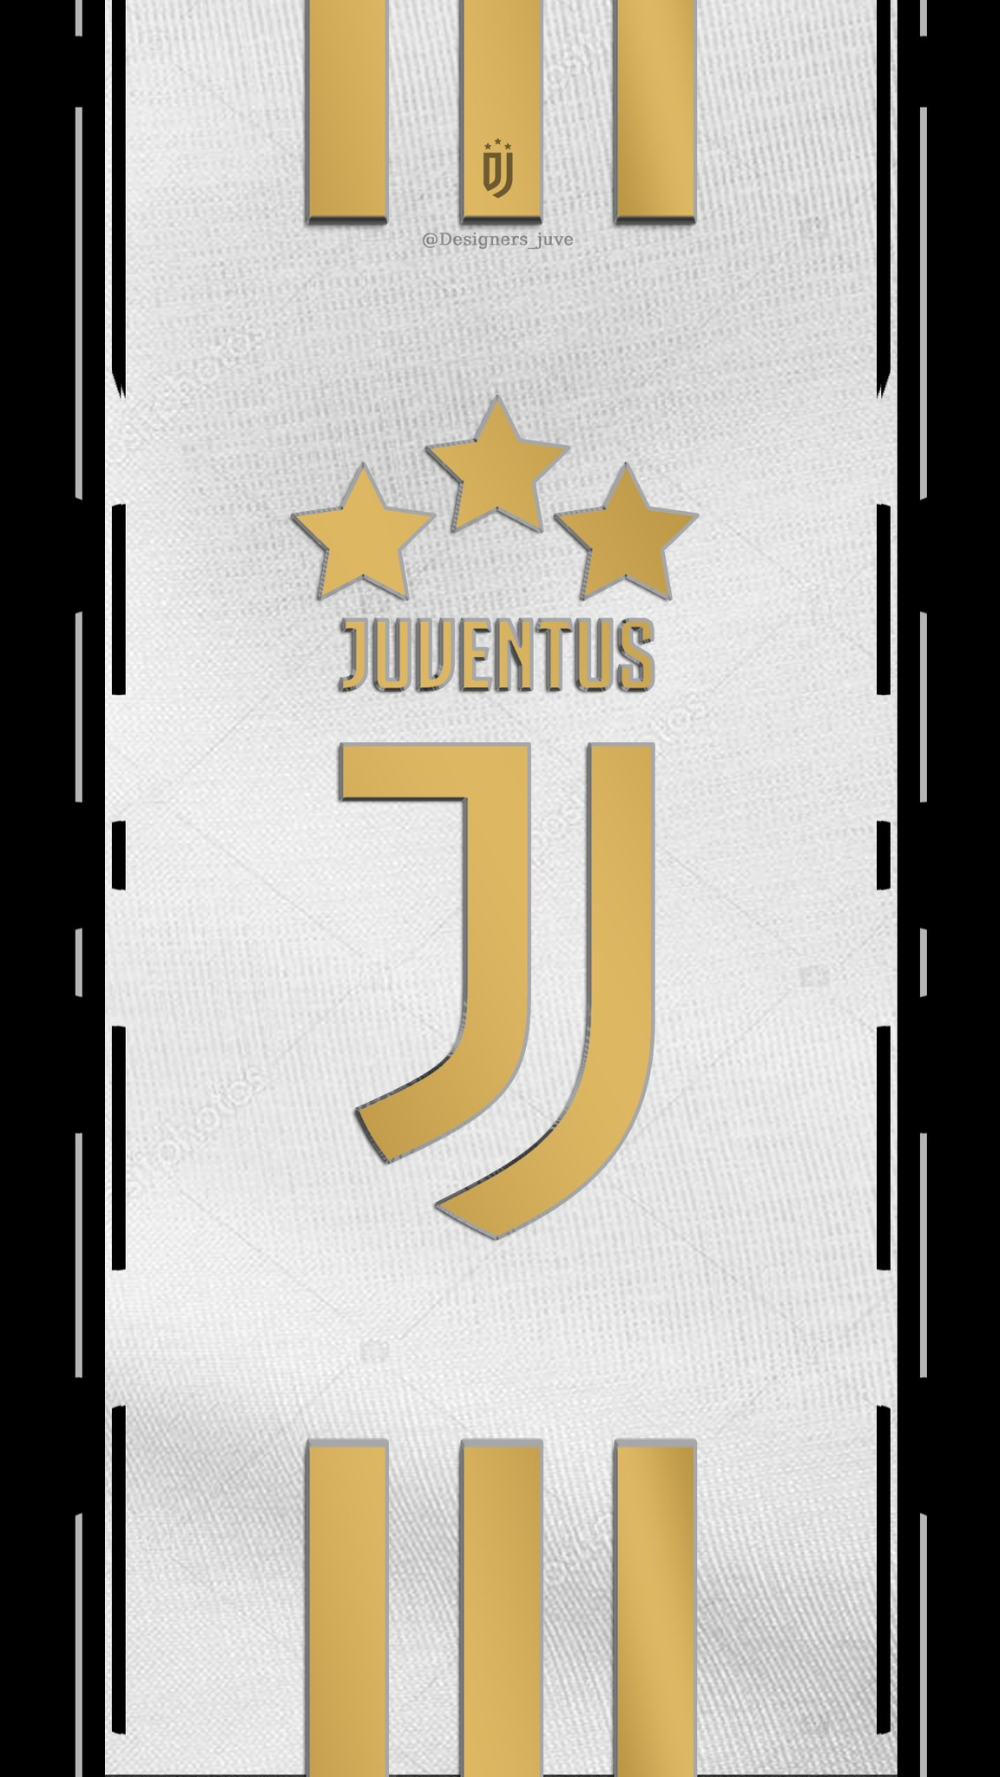 Juventus 2021 Wallpapers Wallpaper Cave